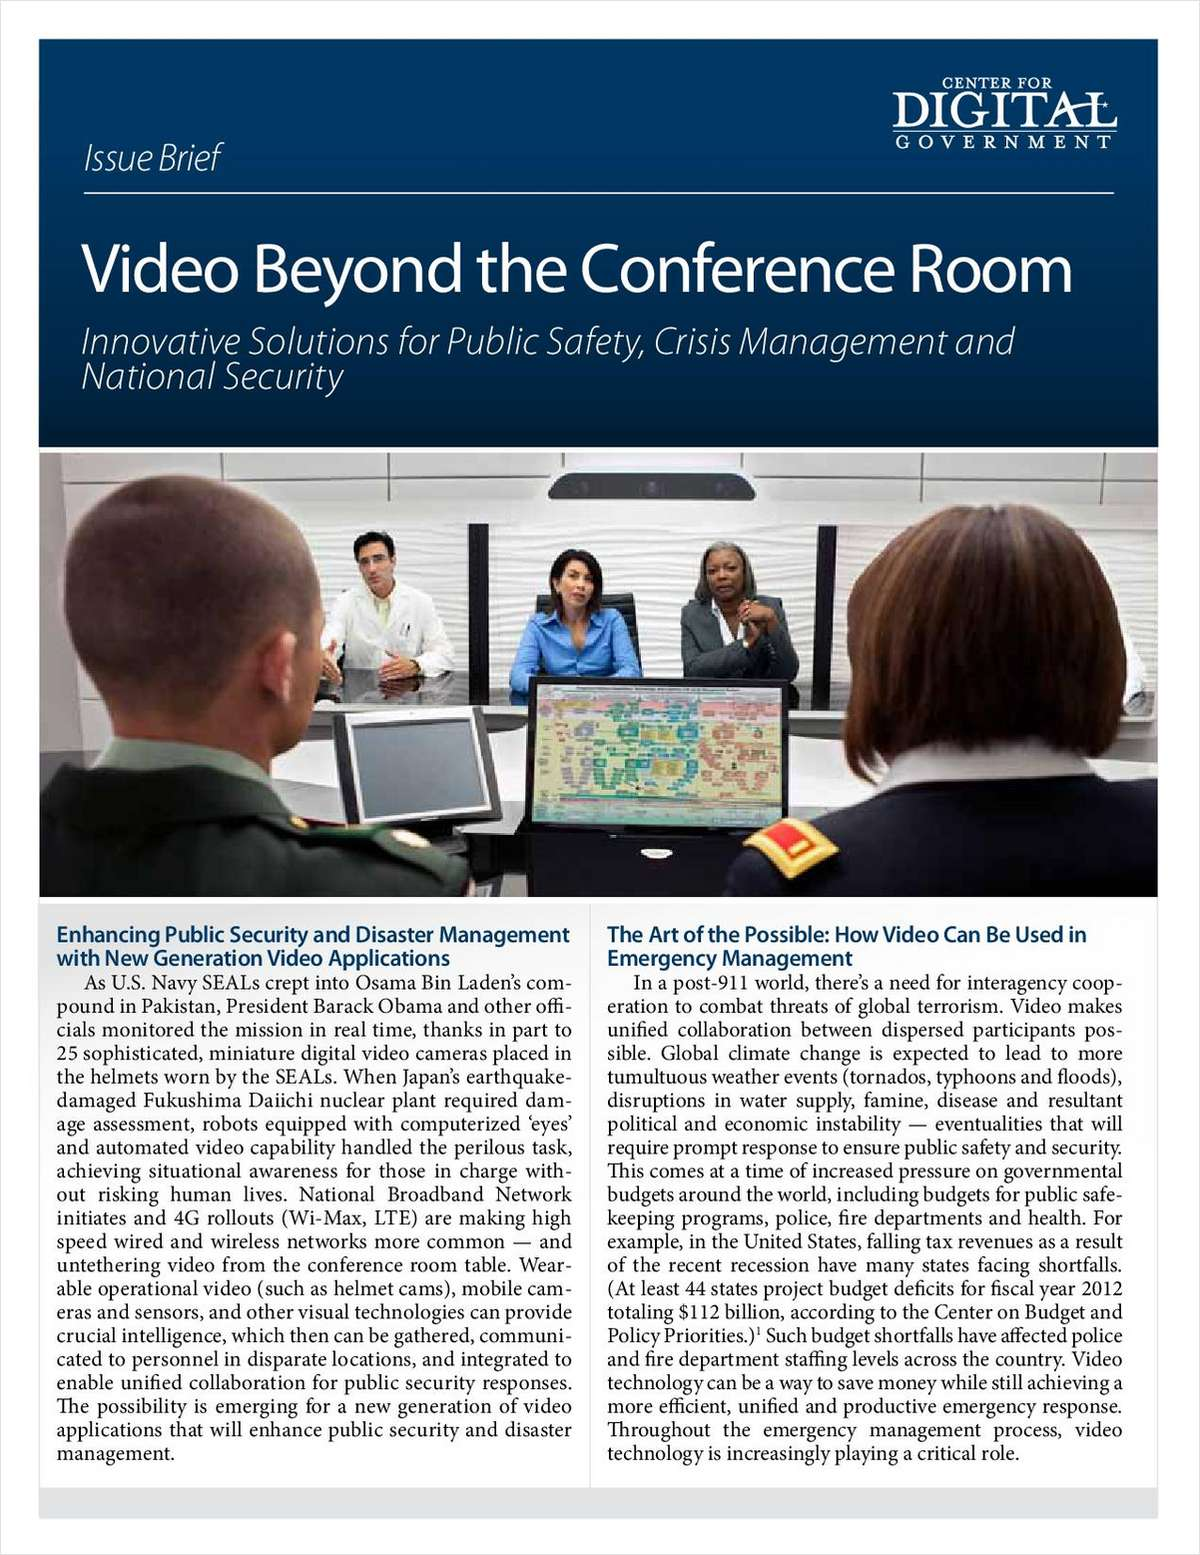 Video Beyond the Conference Room